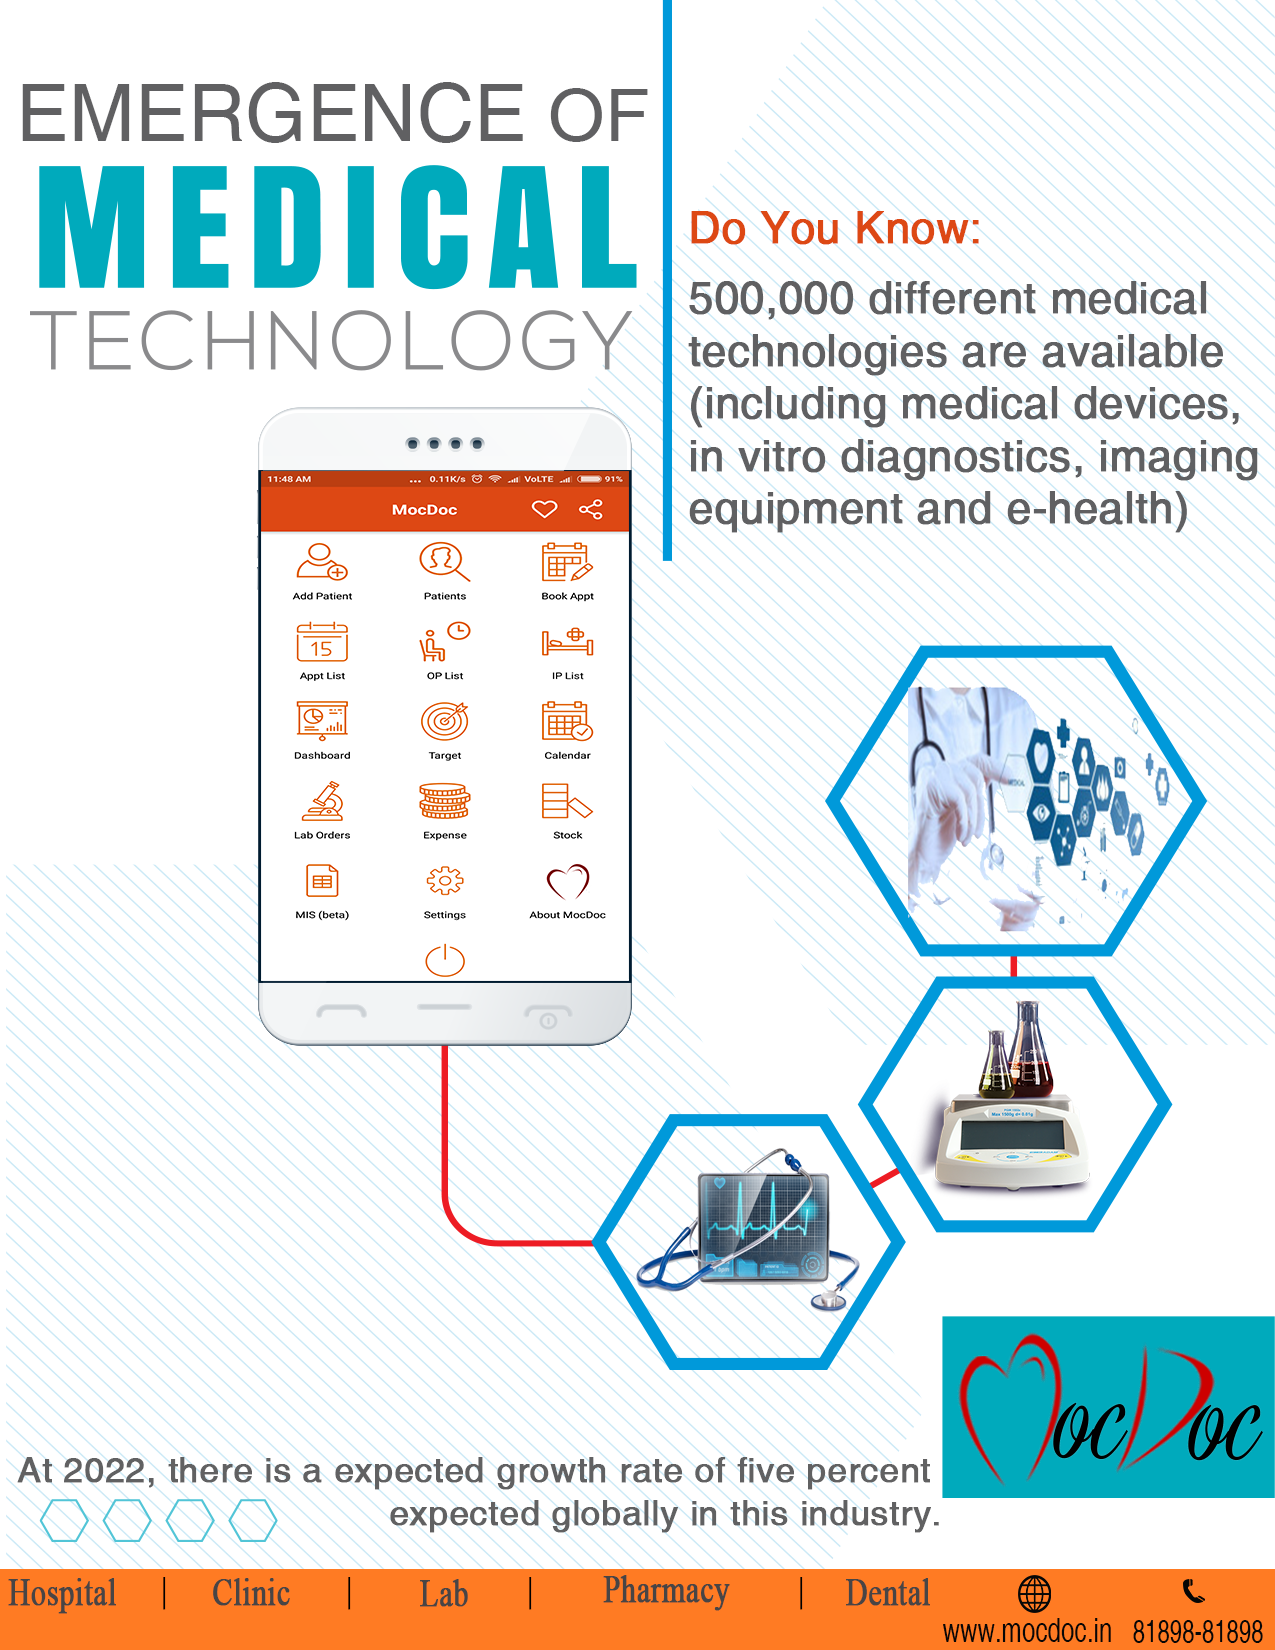 medical technology is used for diagnosis monitoring or